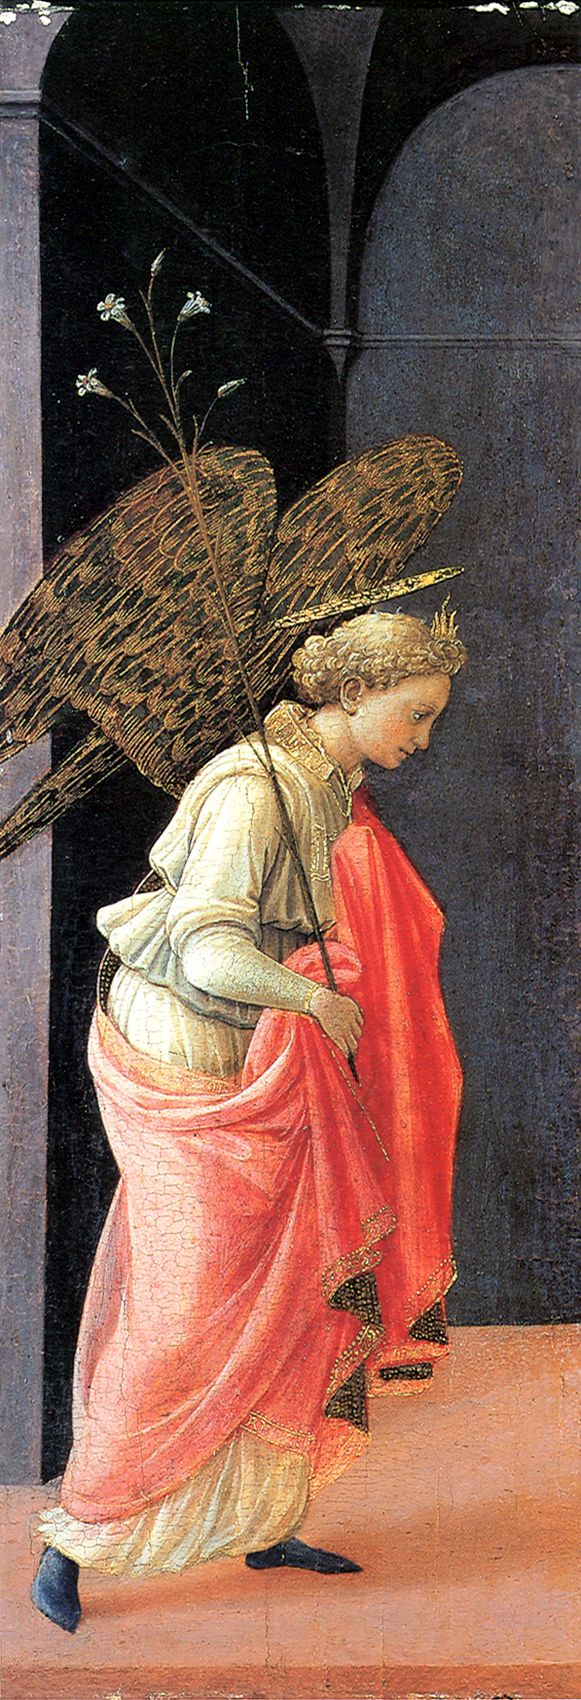 Filippo Lippi - The Annunciation (left wing) 1437-39. Tempera on wood, 64 x 23 cm (each panel) Frick Collection, New York